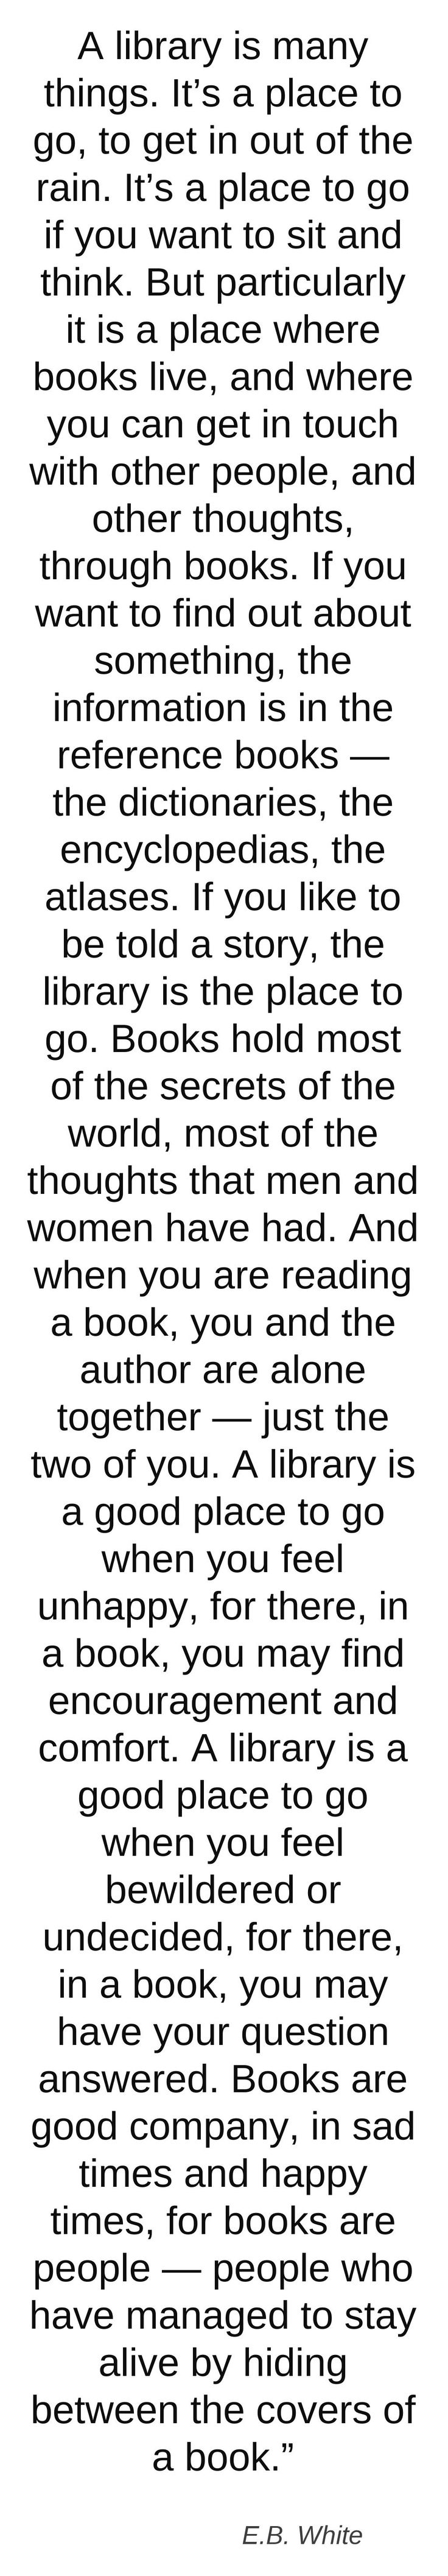 Quote by E.B White on libraries. It's also a place where the Vashda Narada live.